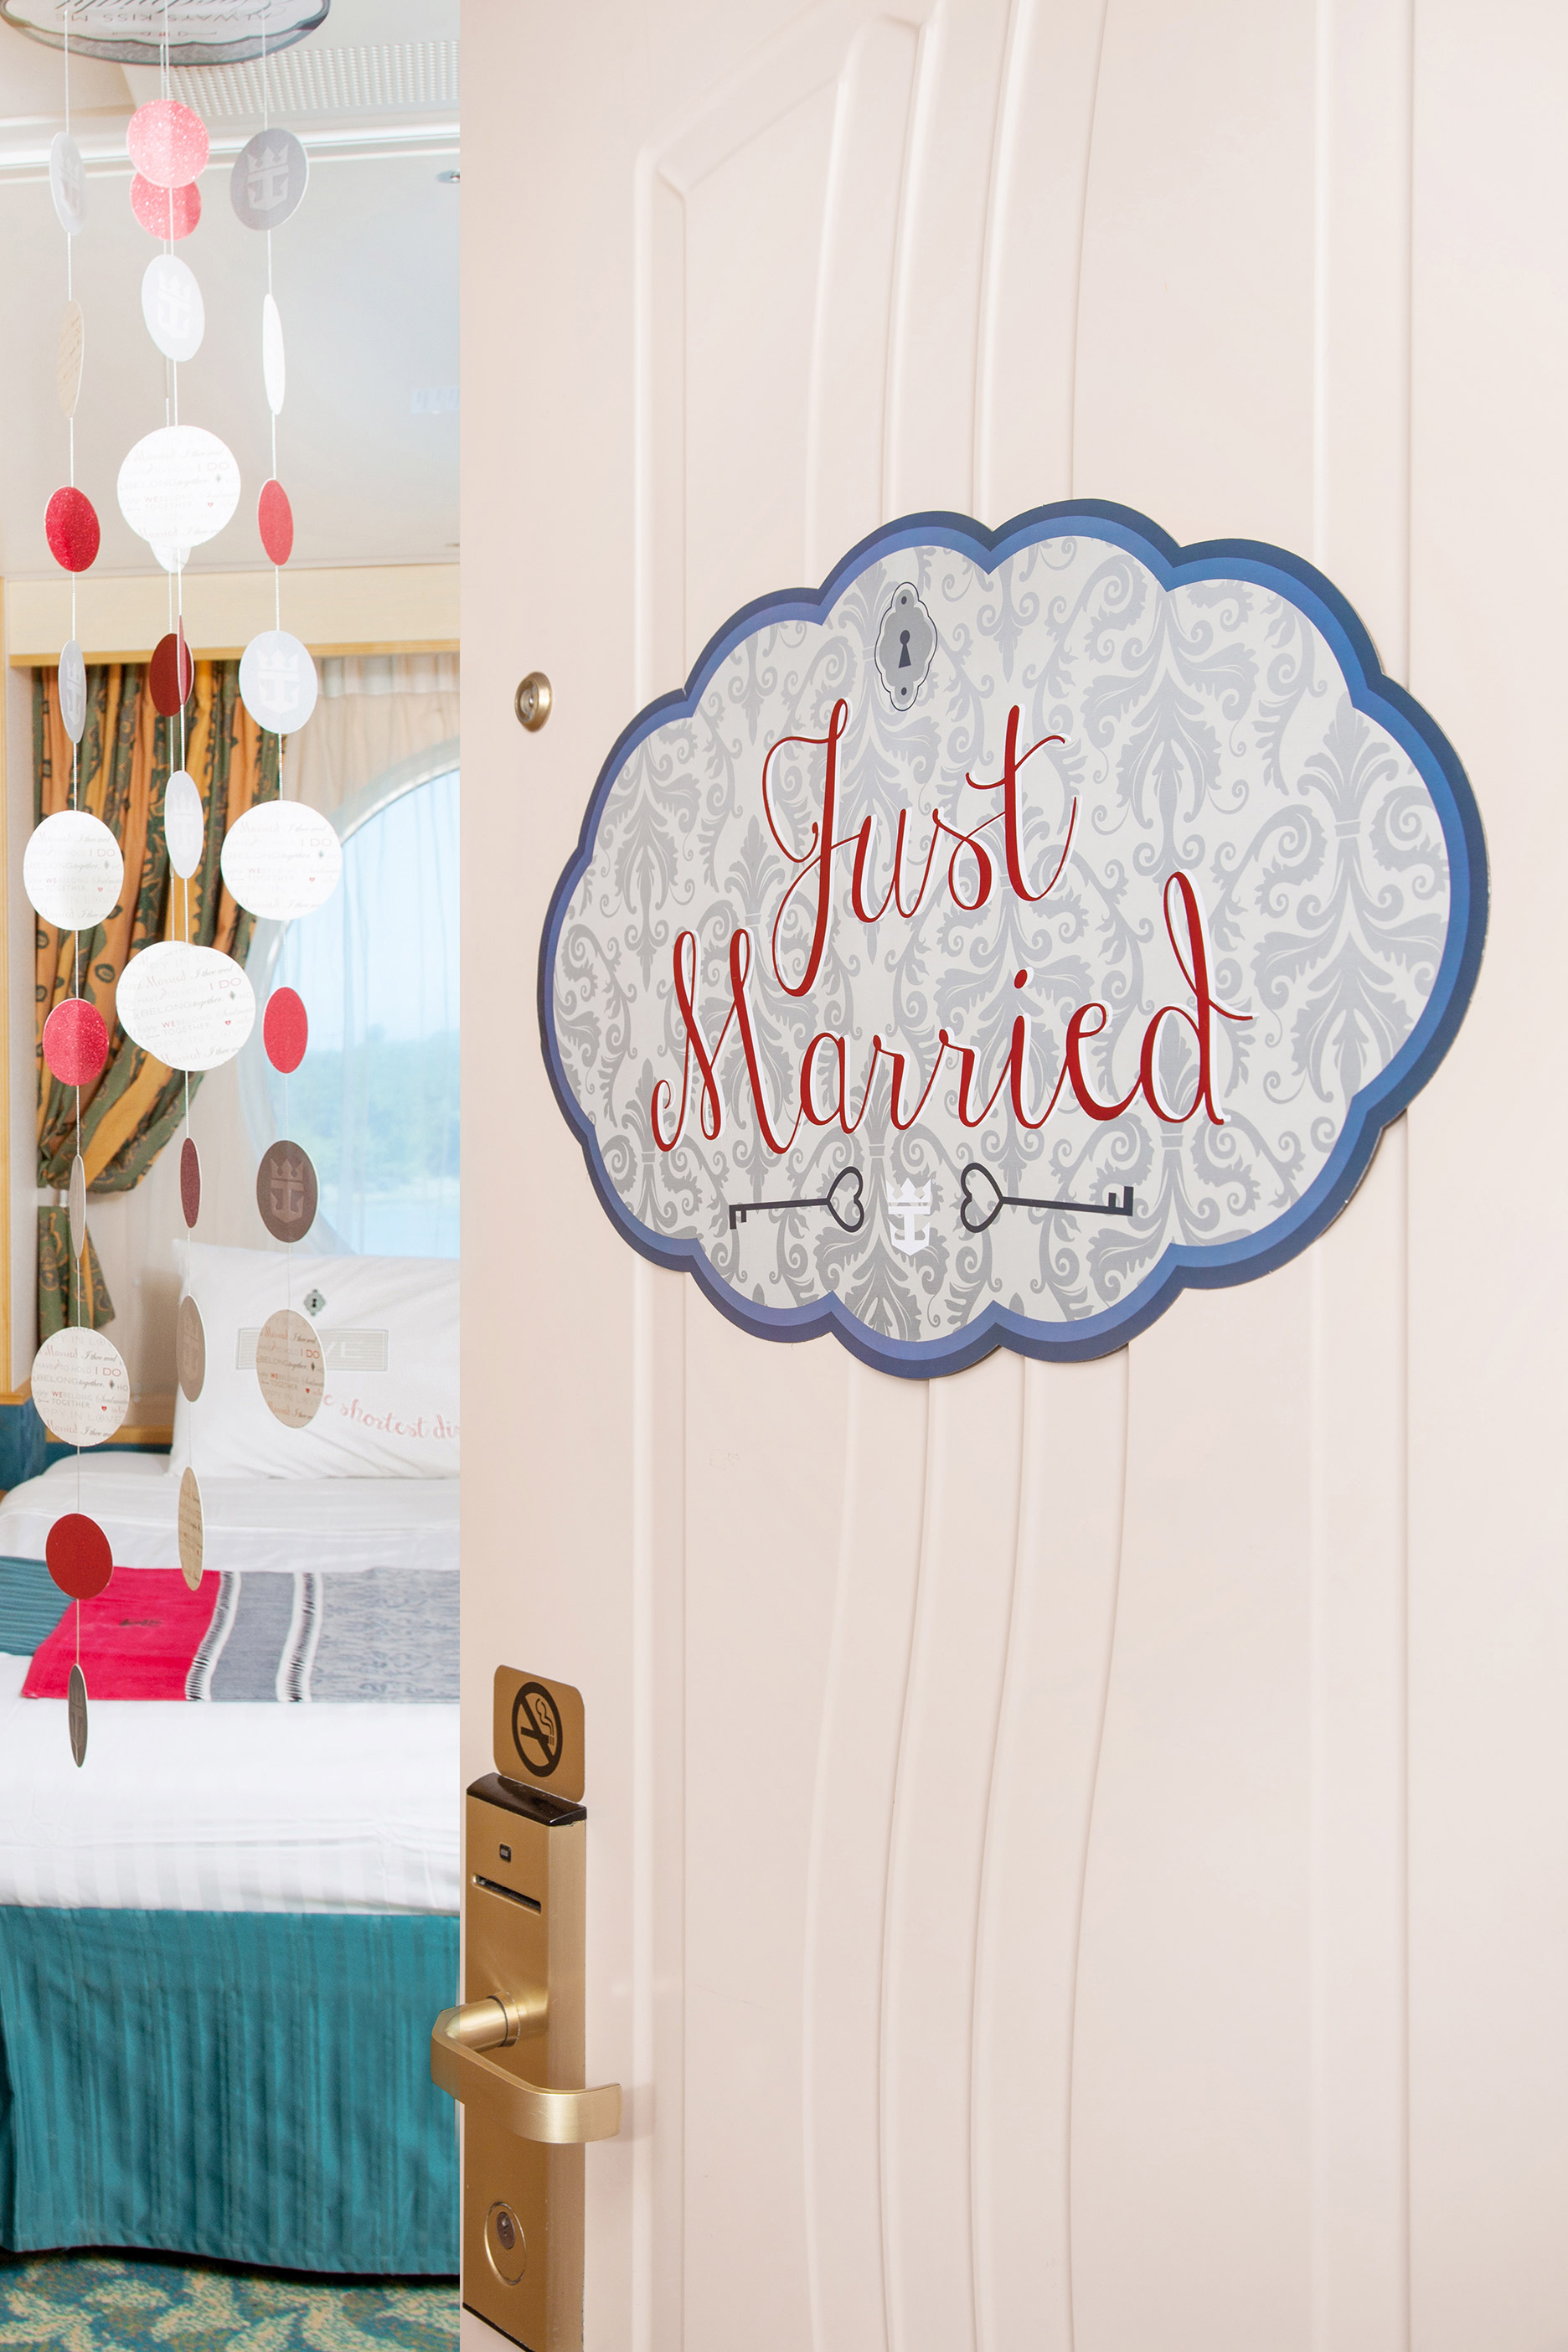 Just married room d cor package for Room decor gifts